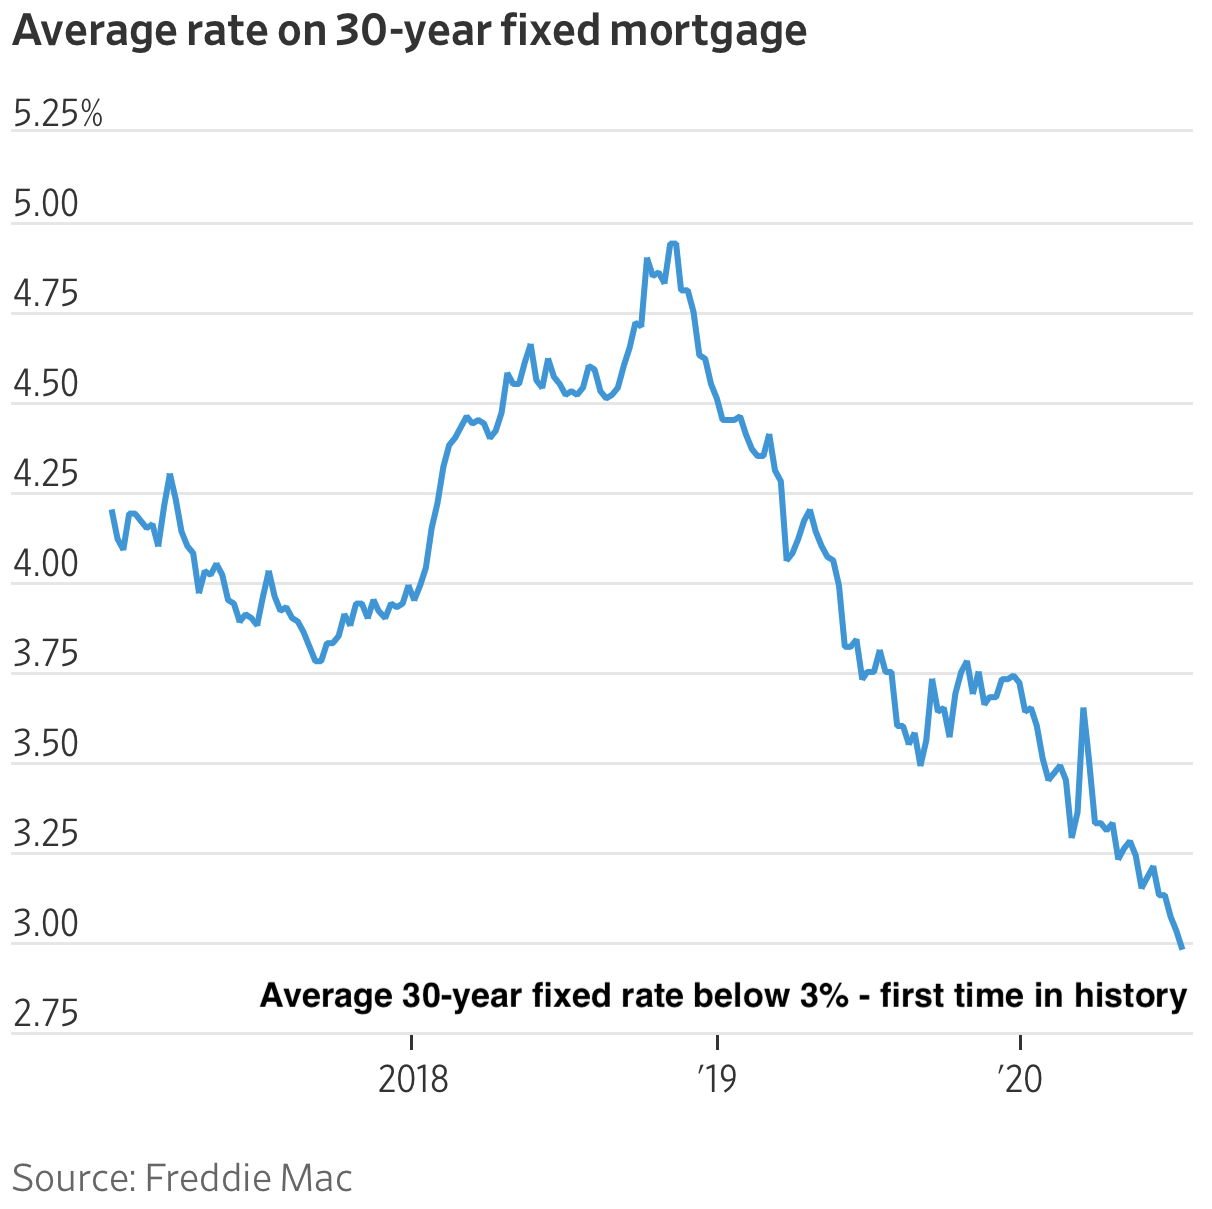 Average 30-year fixed mortgage rate at record low - home buying rule